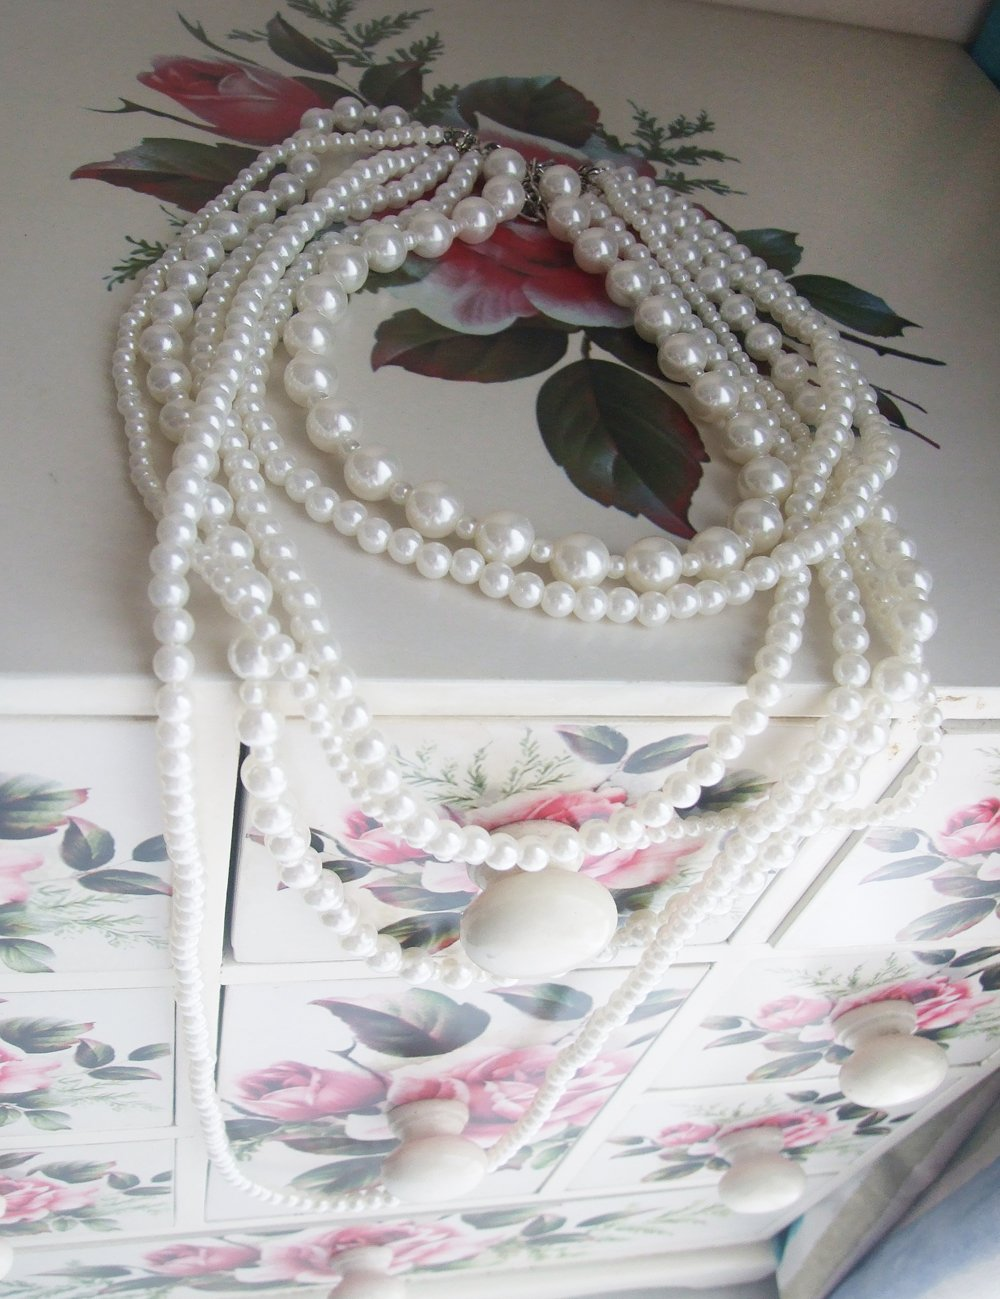 Amazon: New Fashion Long 6 Row White Faux Pearls Necklace 35